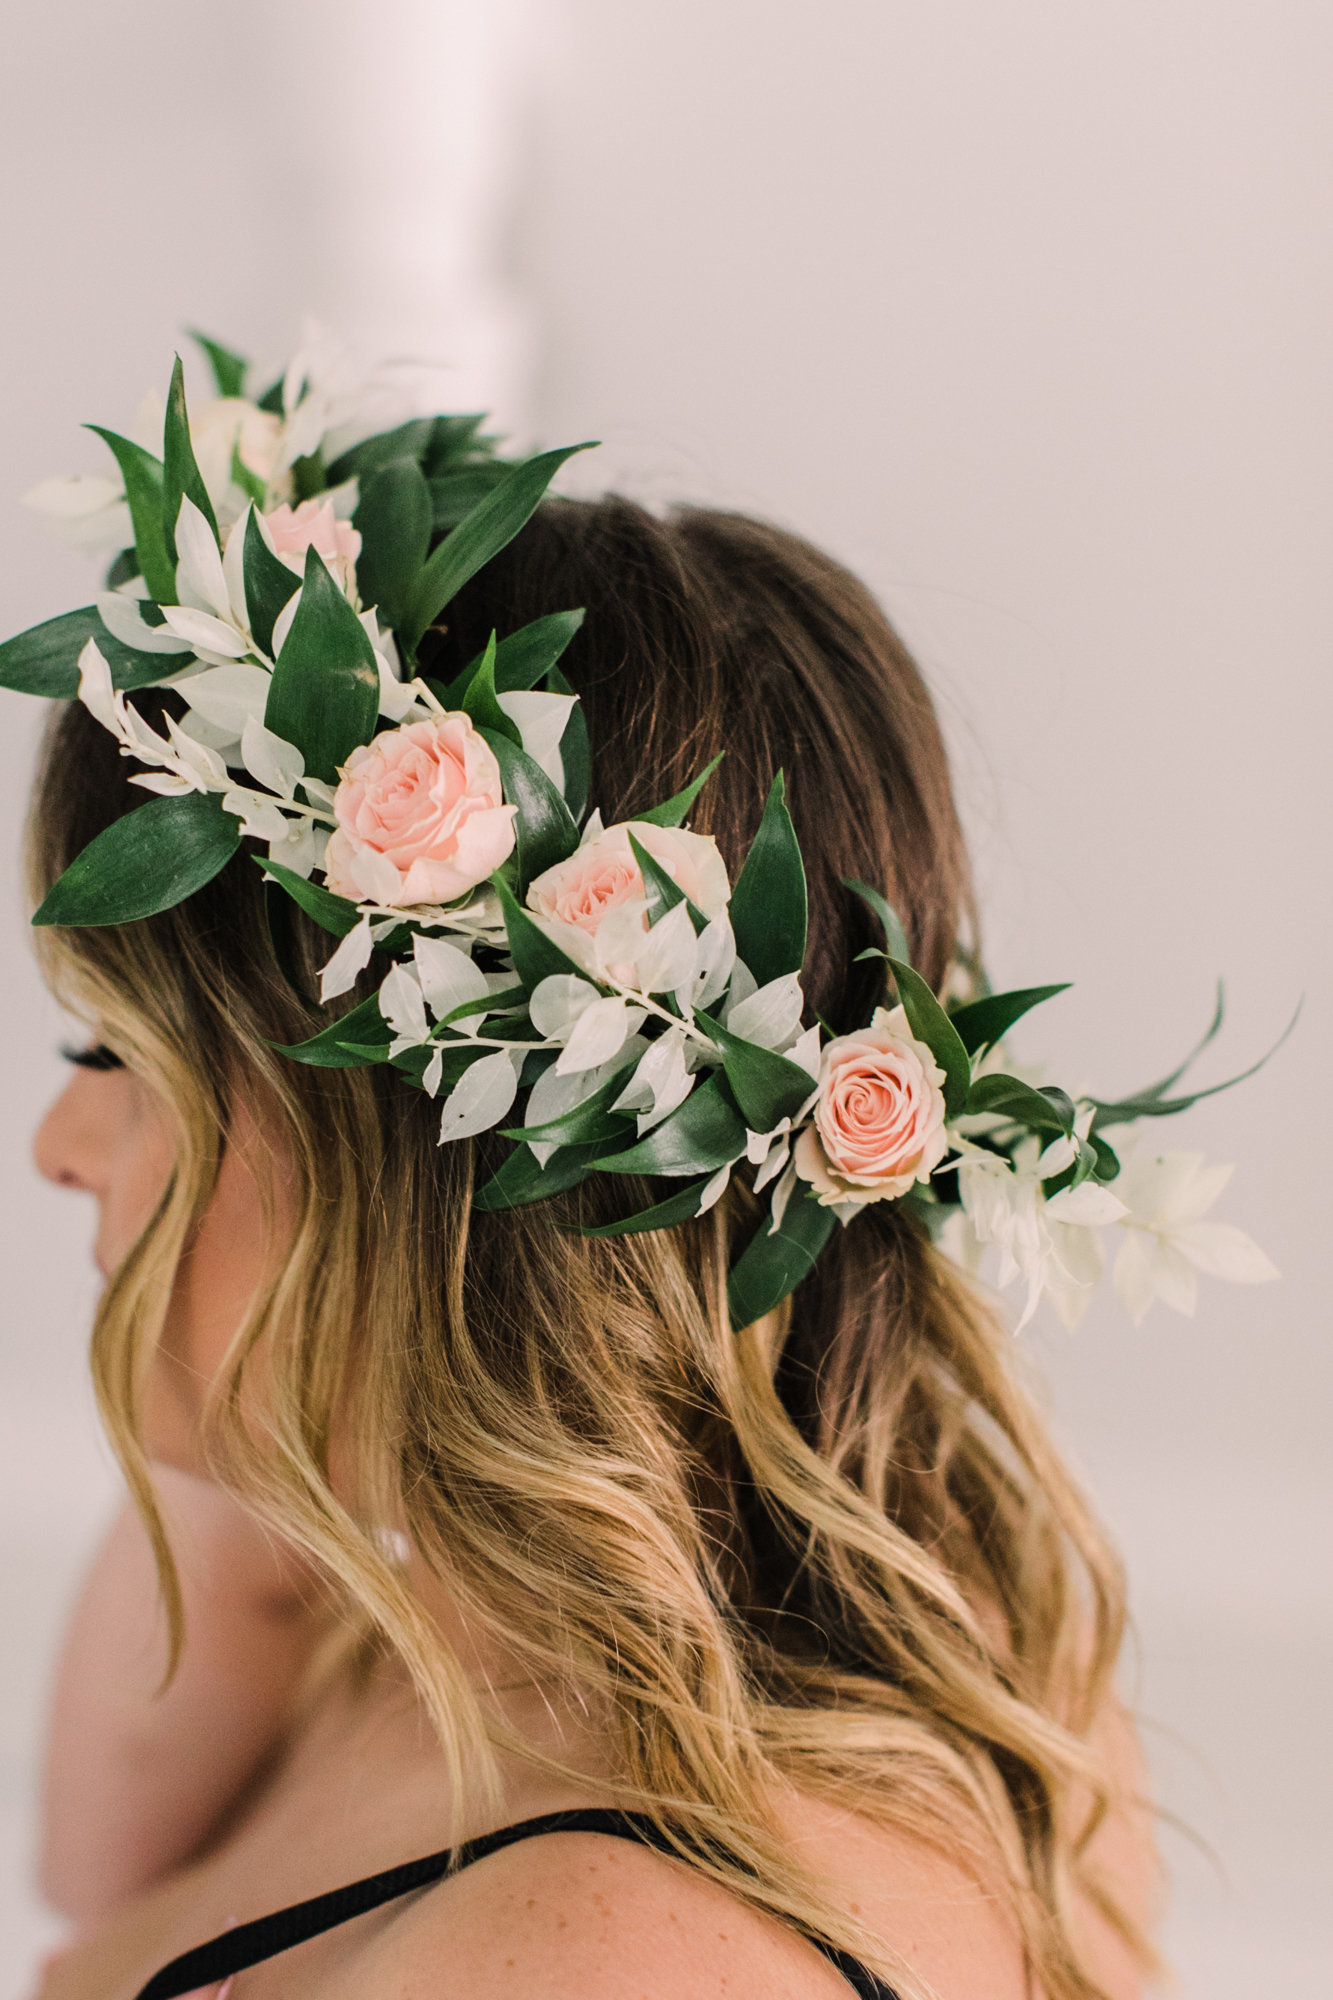 Floral crown for a boudoir photo